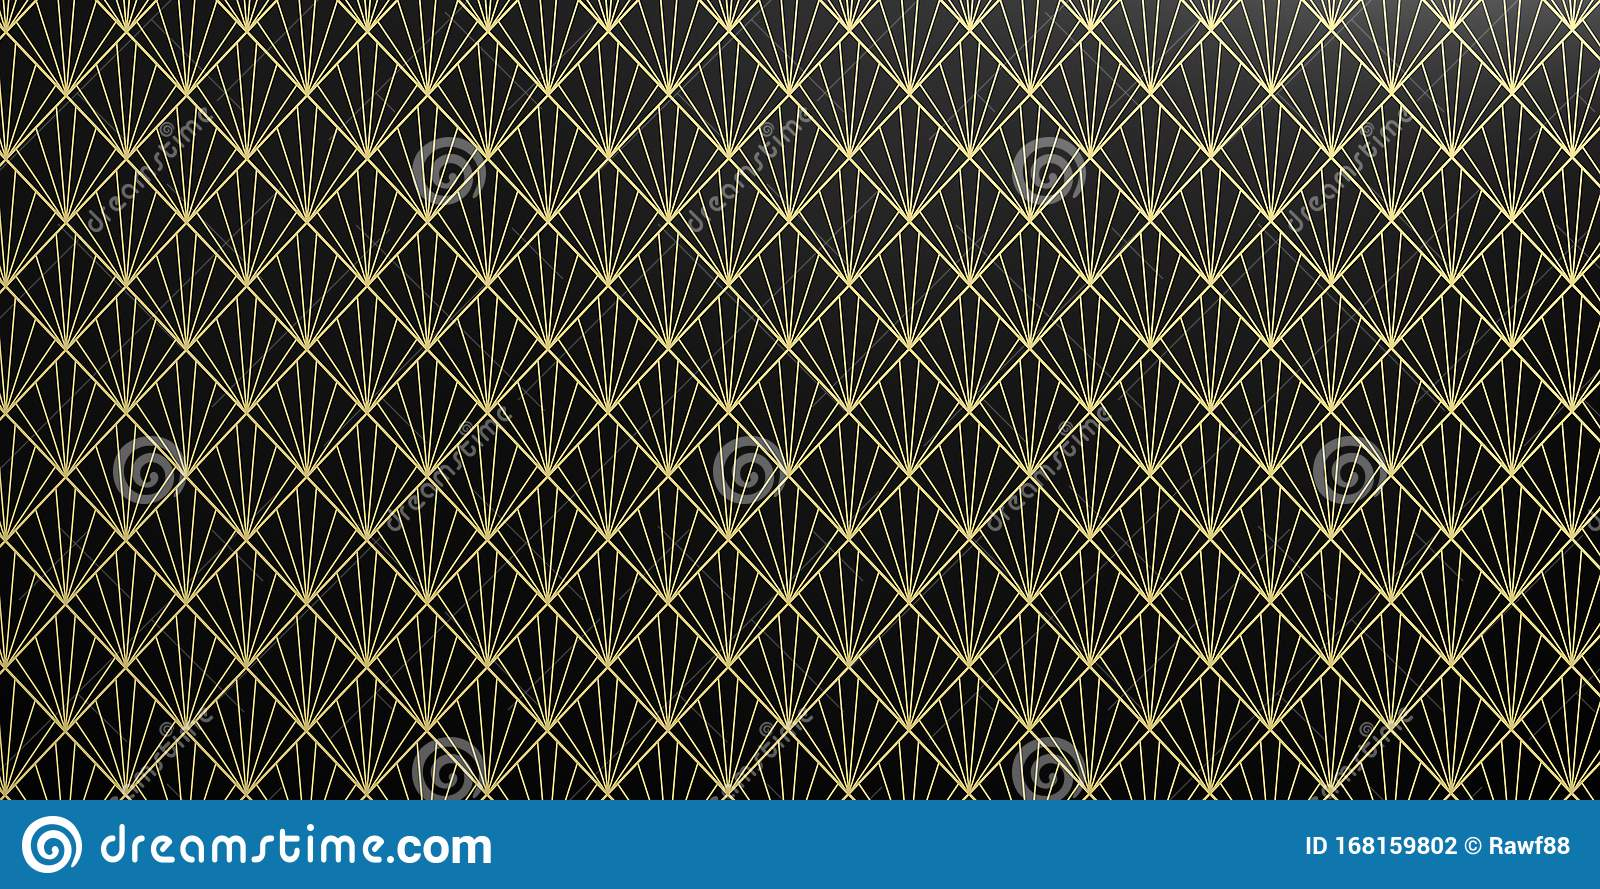 geometric wallpaper pattern black yellow color seamless background shiny texture d illustration art deco geometric seamless 168159802